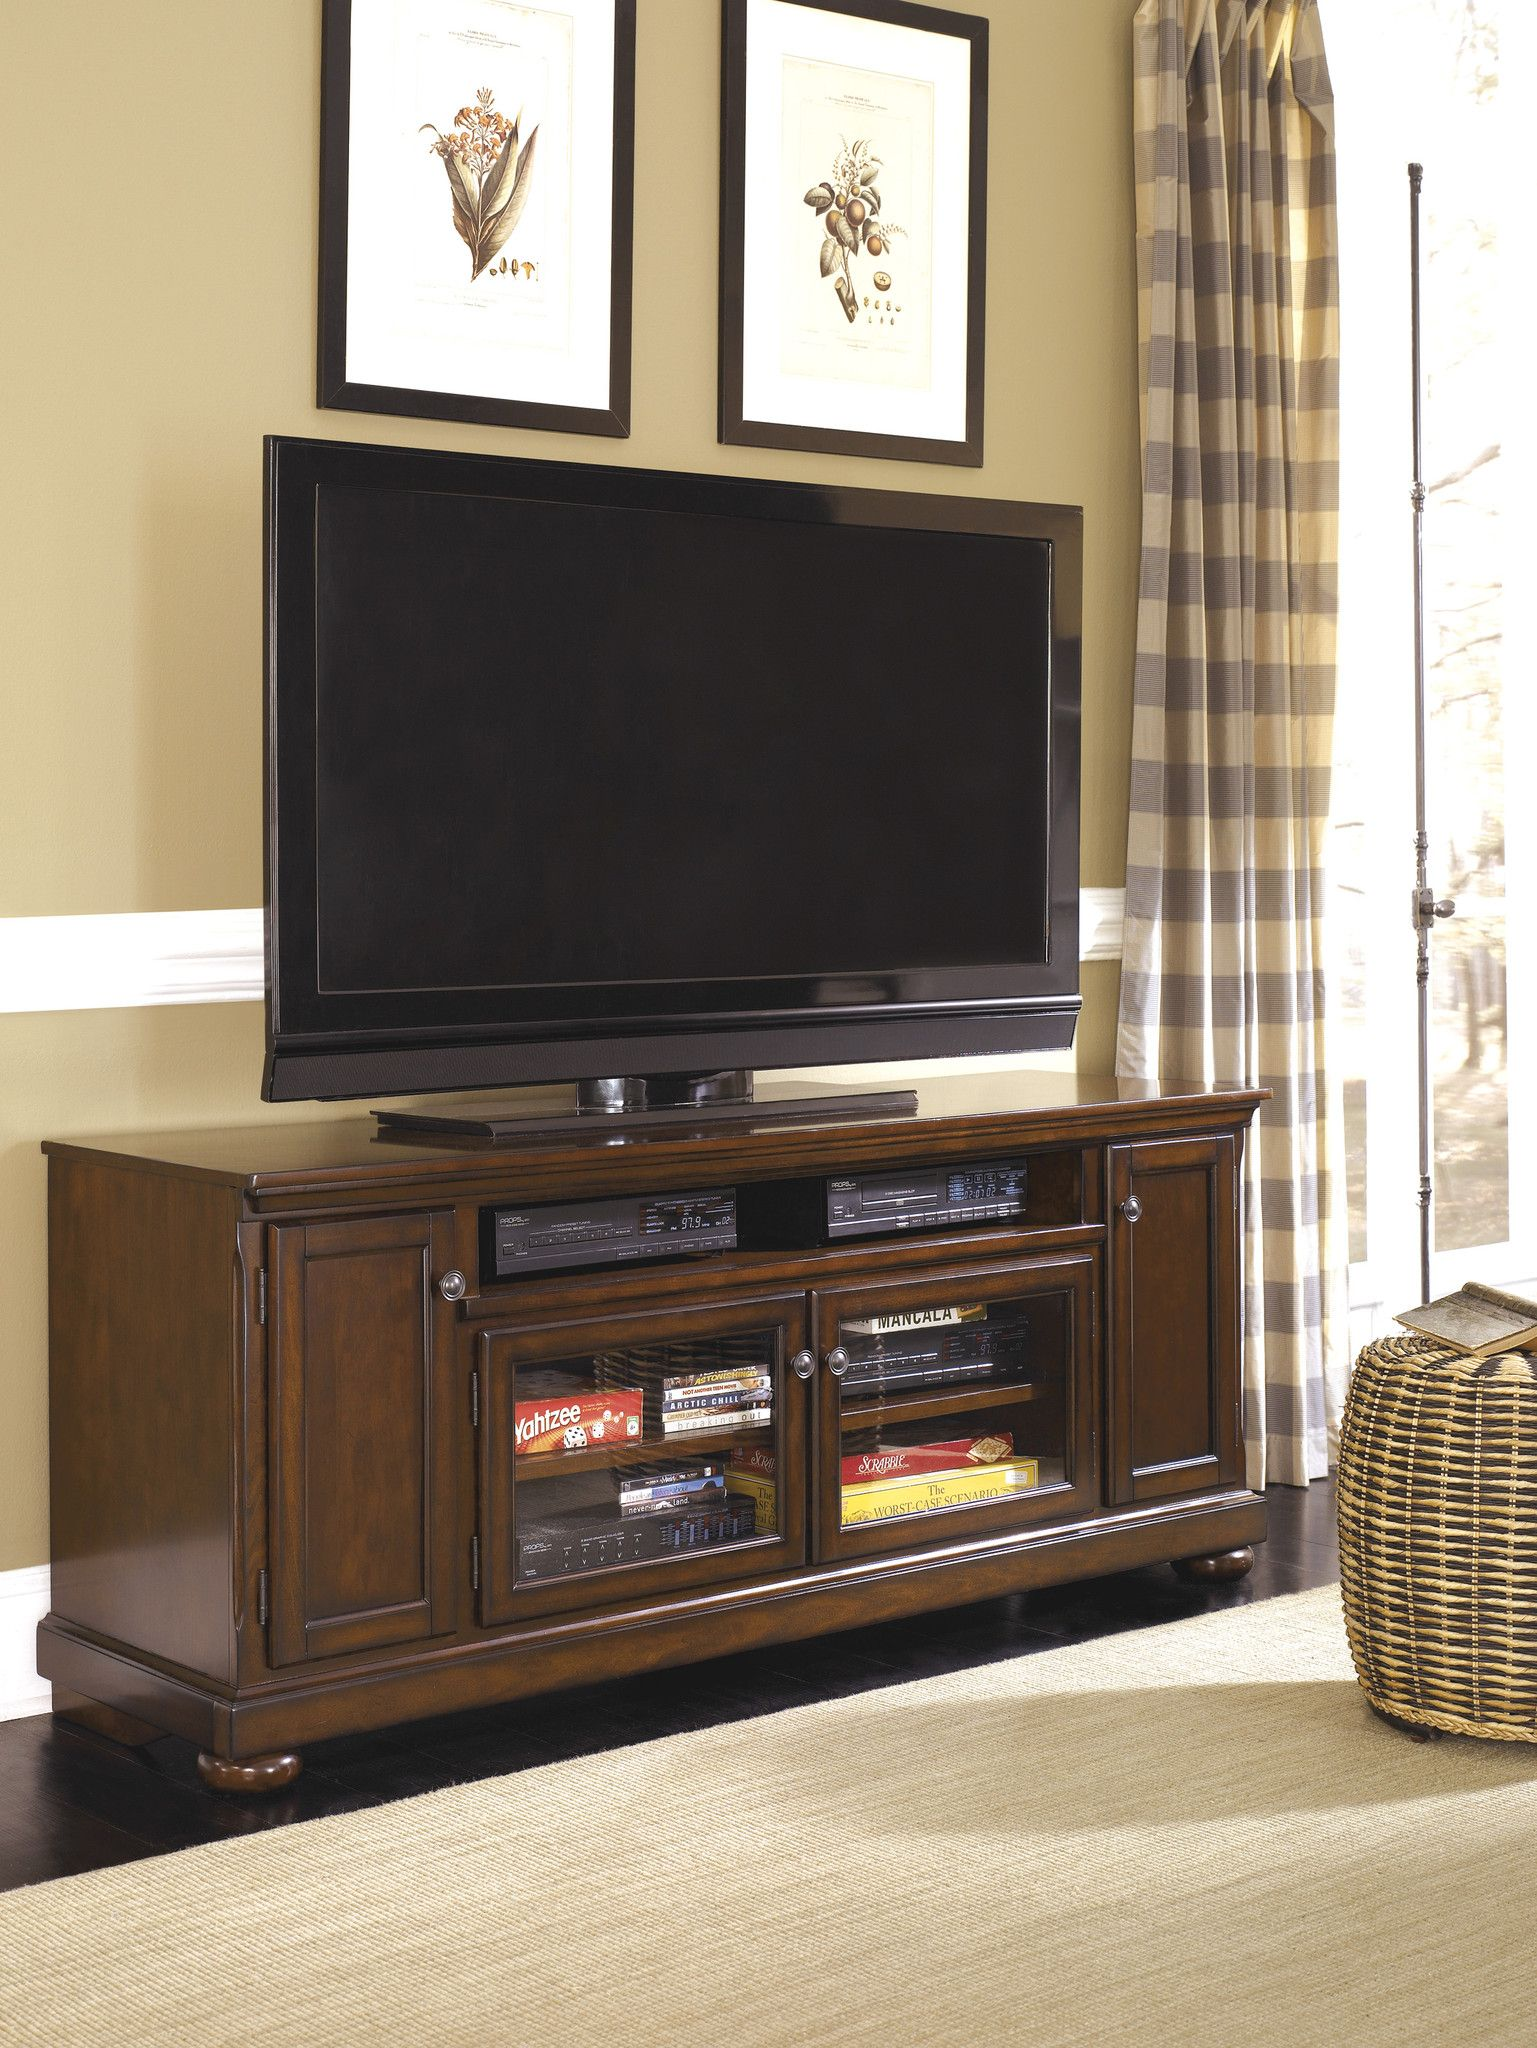 tv stands for sale on porter extra large tv stand large tv stands home entertainment furniture tv stand furniture porter extra large tv stand large tv